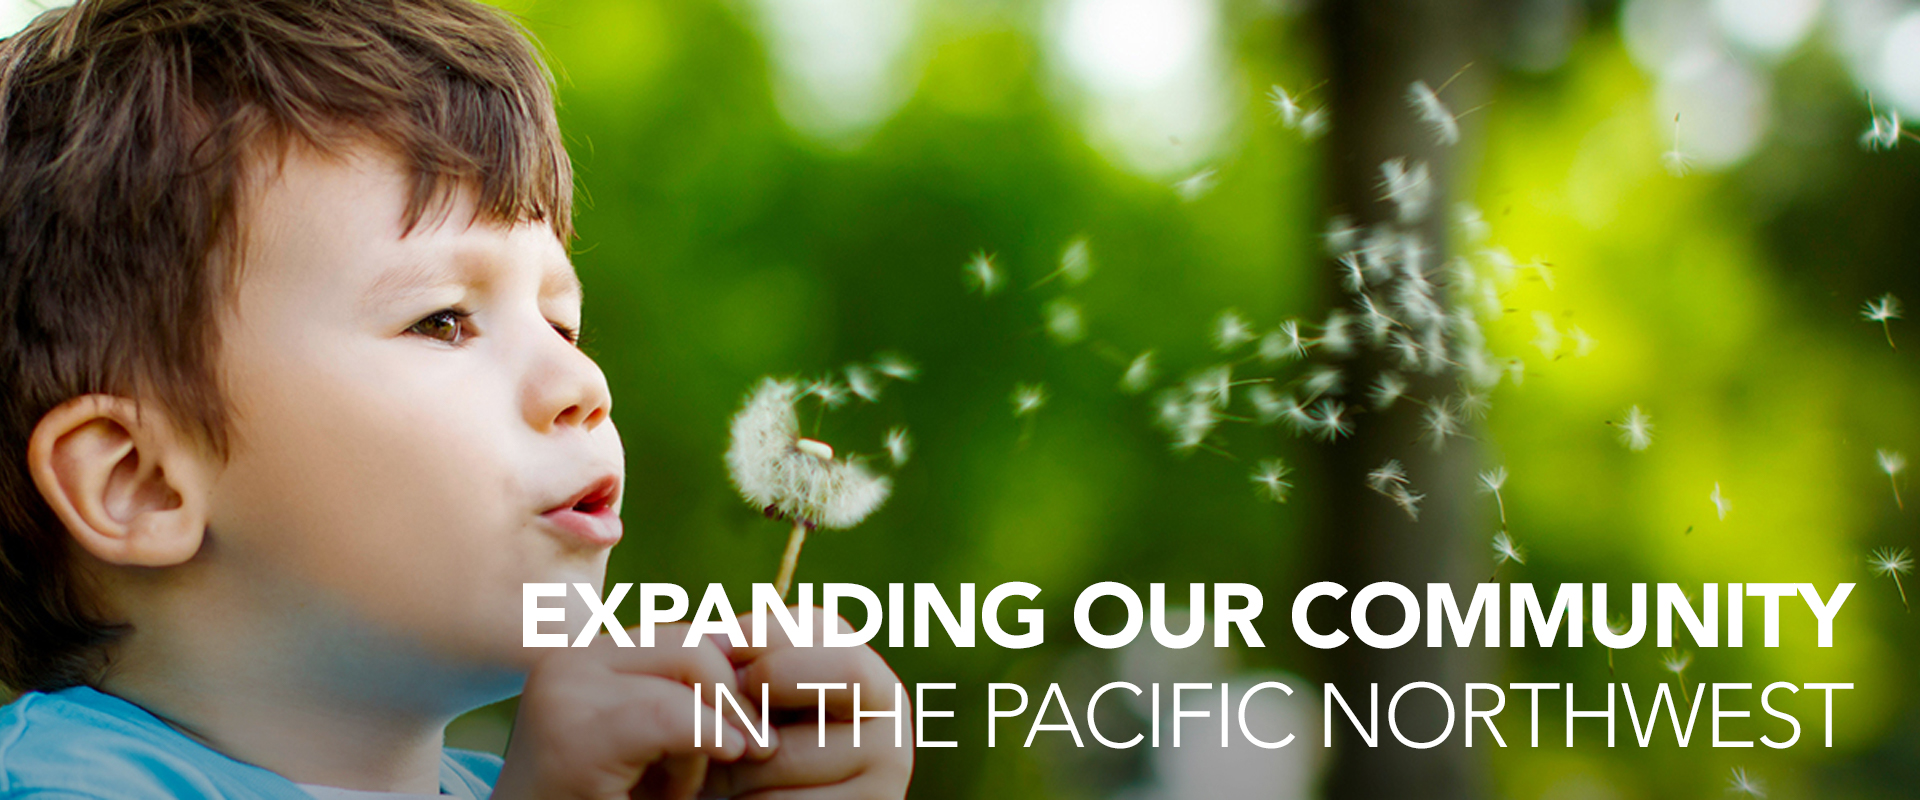 Expanding Our Community in the Pacific Northwest